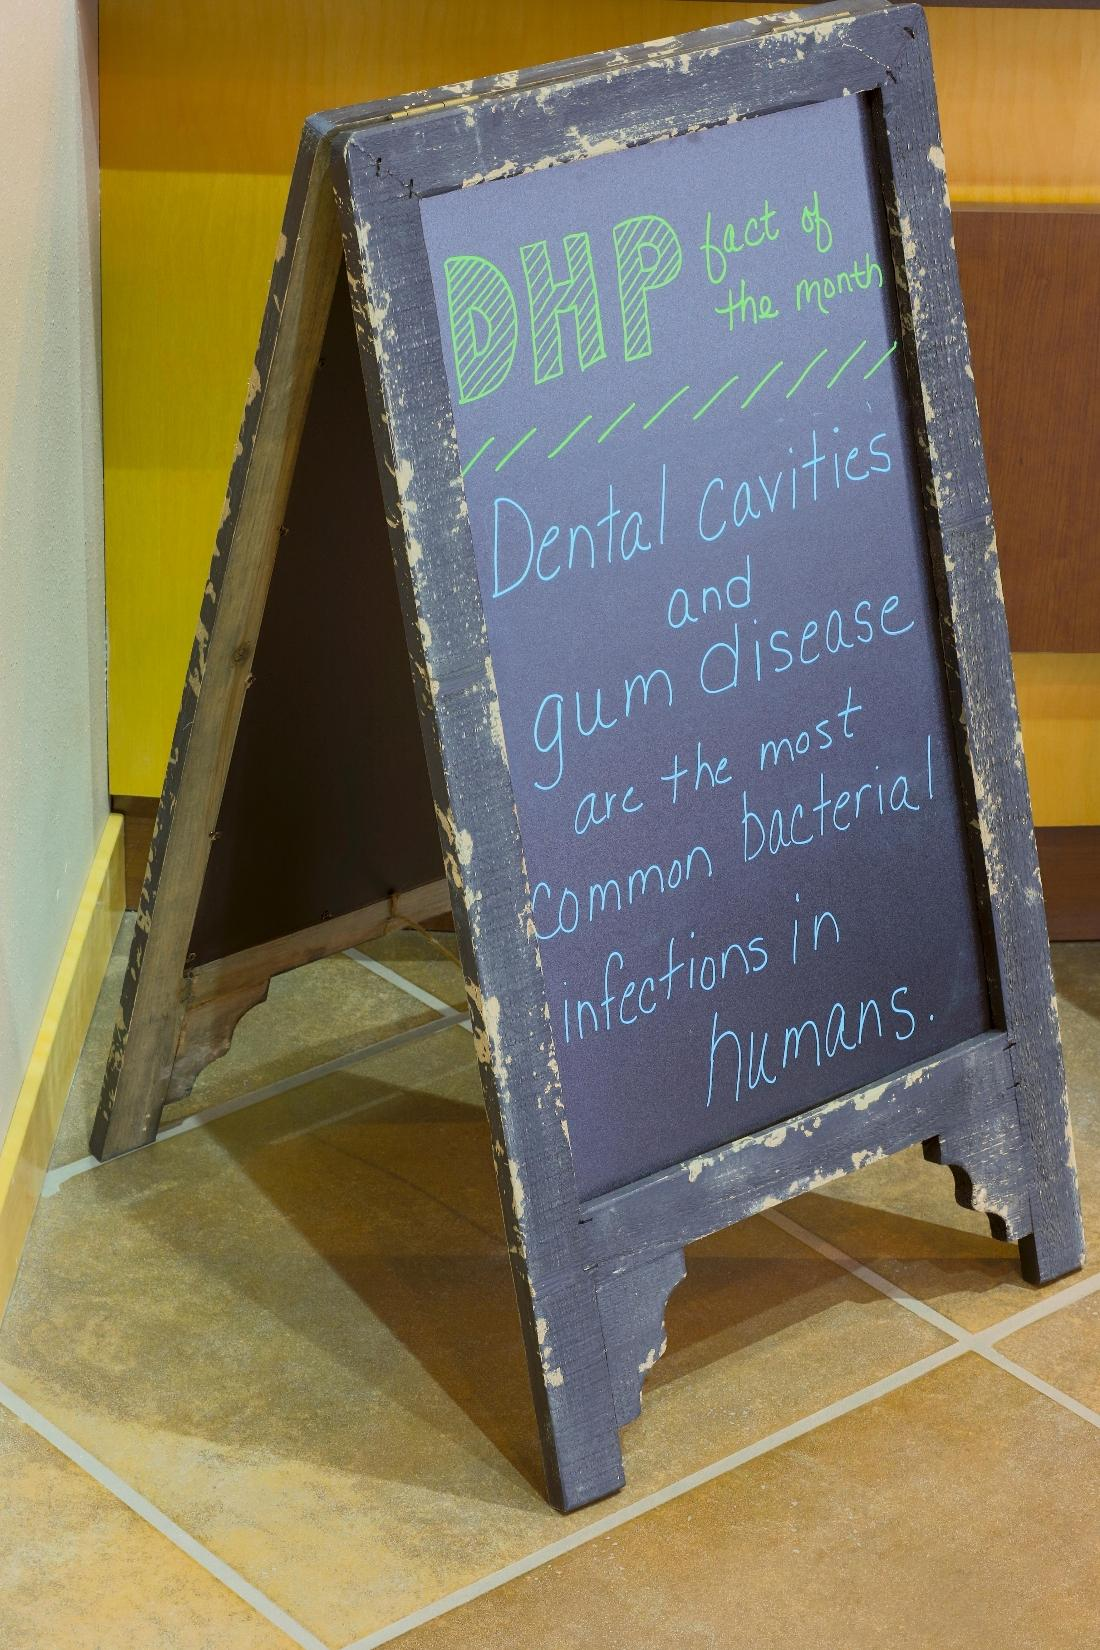 Facts of the Month at Dental Health Partners in Mitchell, SD